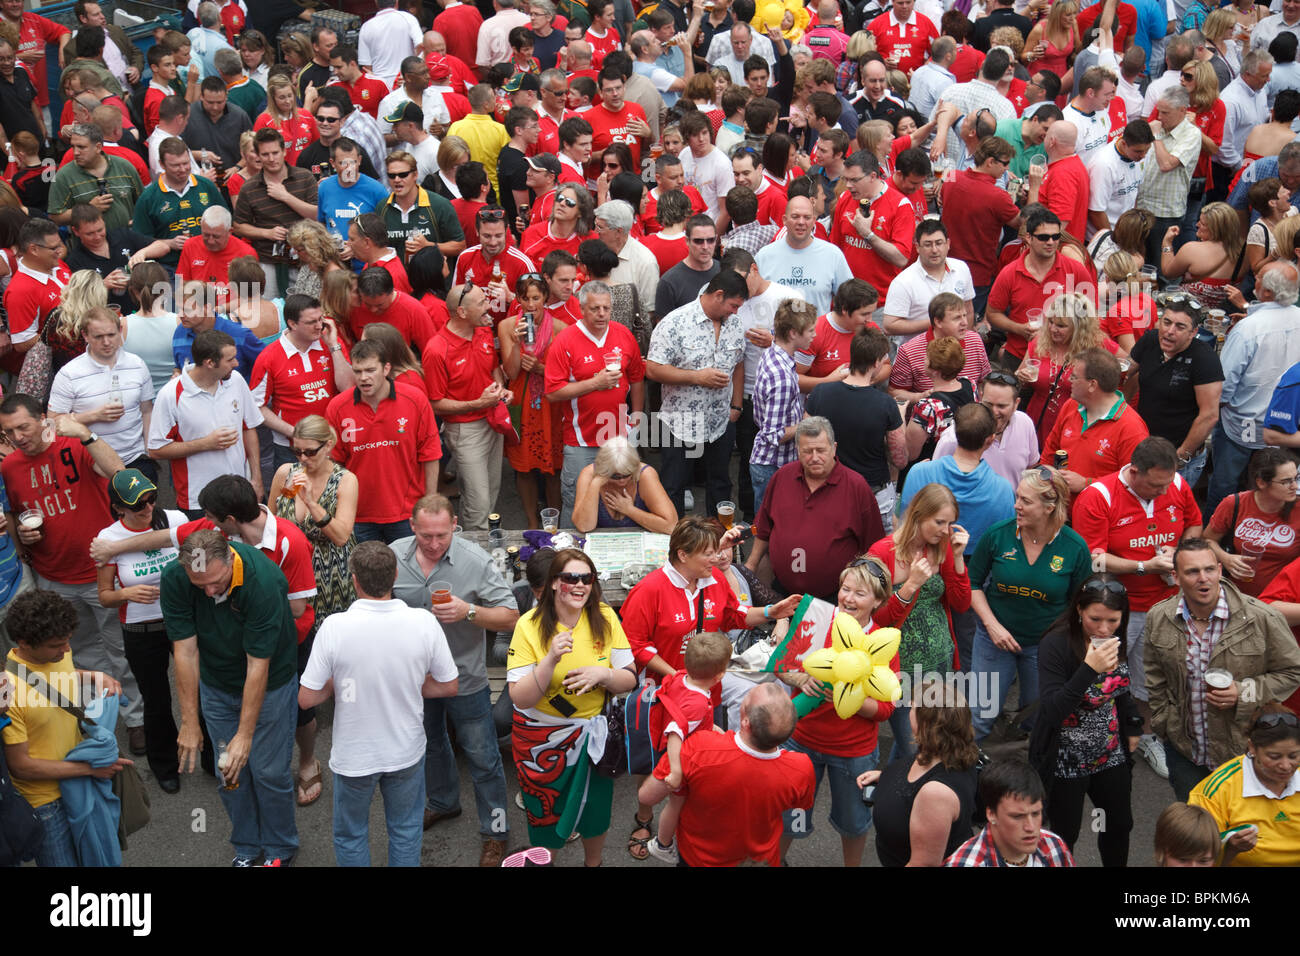 Rugby fans at the outdoor bar outside the Millennium Stadium after Wales - South Africa rugby match in Cardiff, - Stock Image